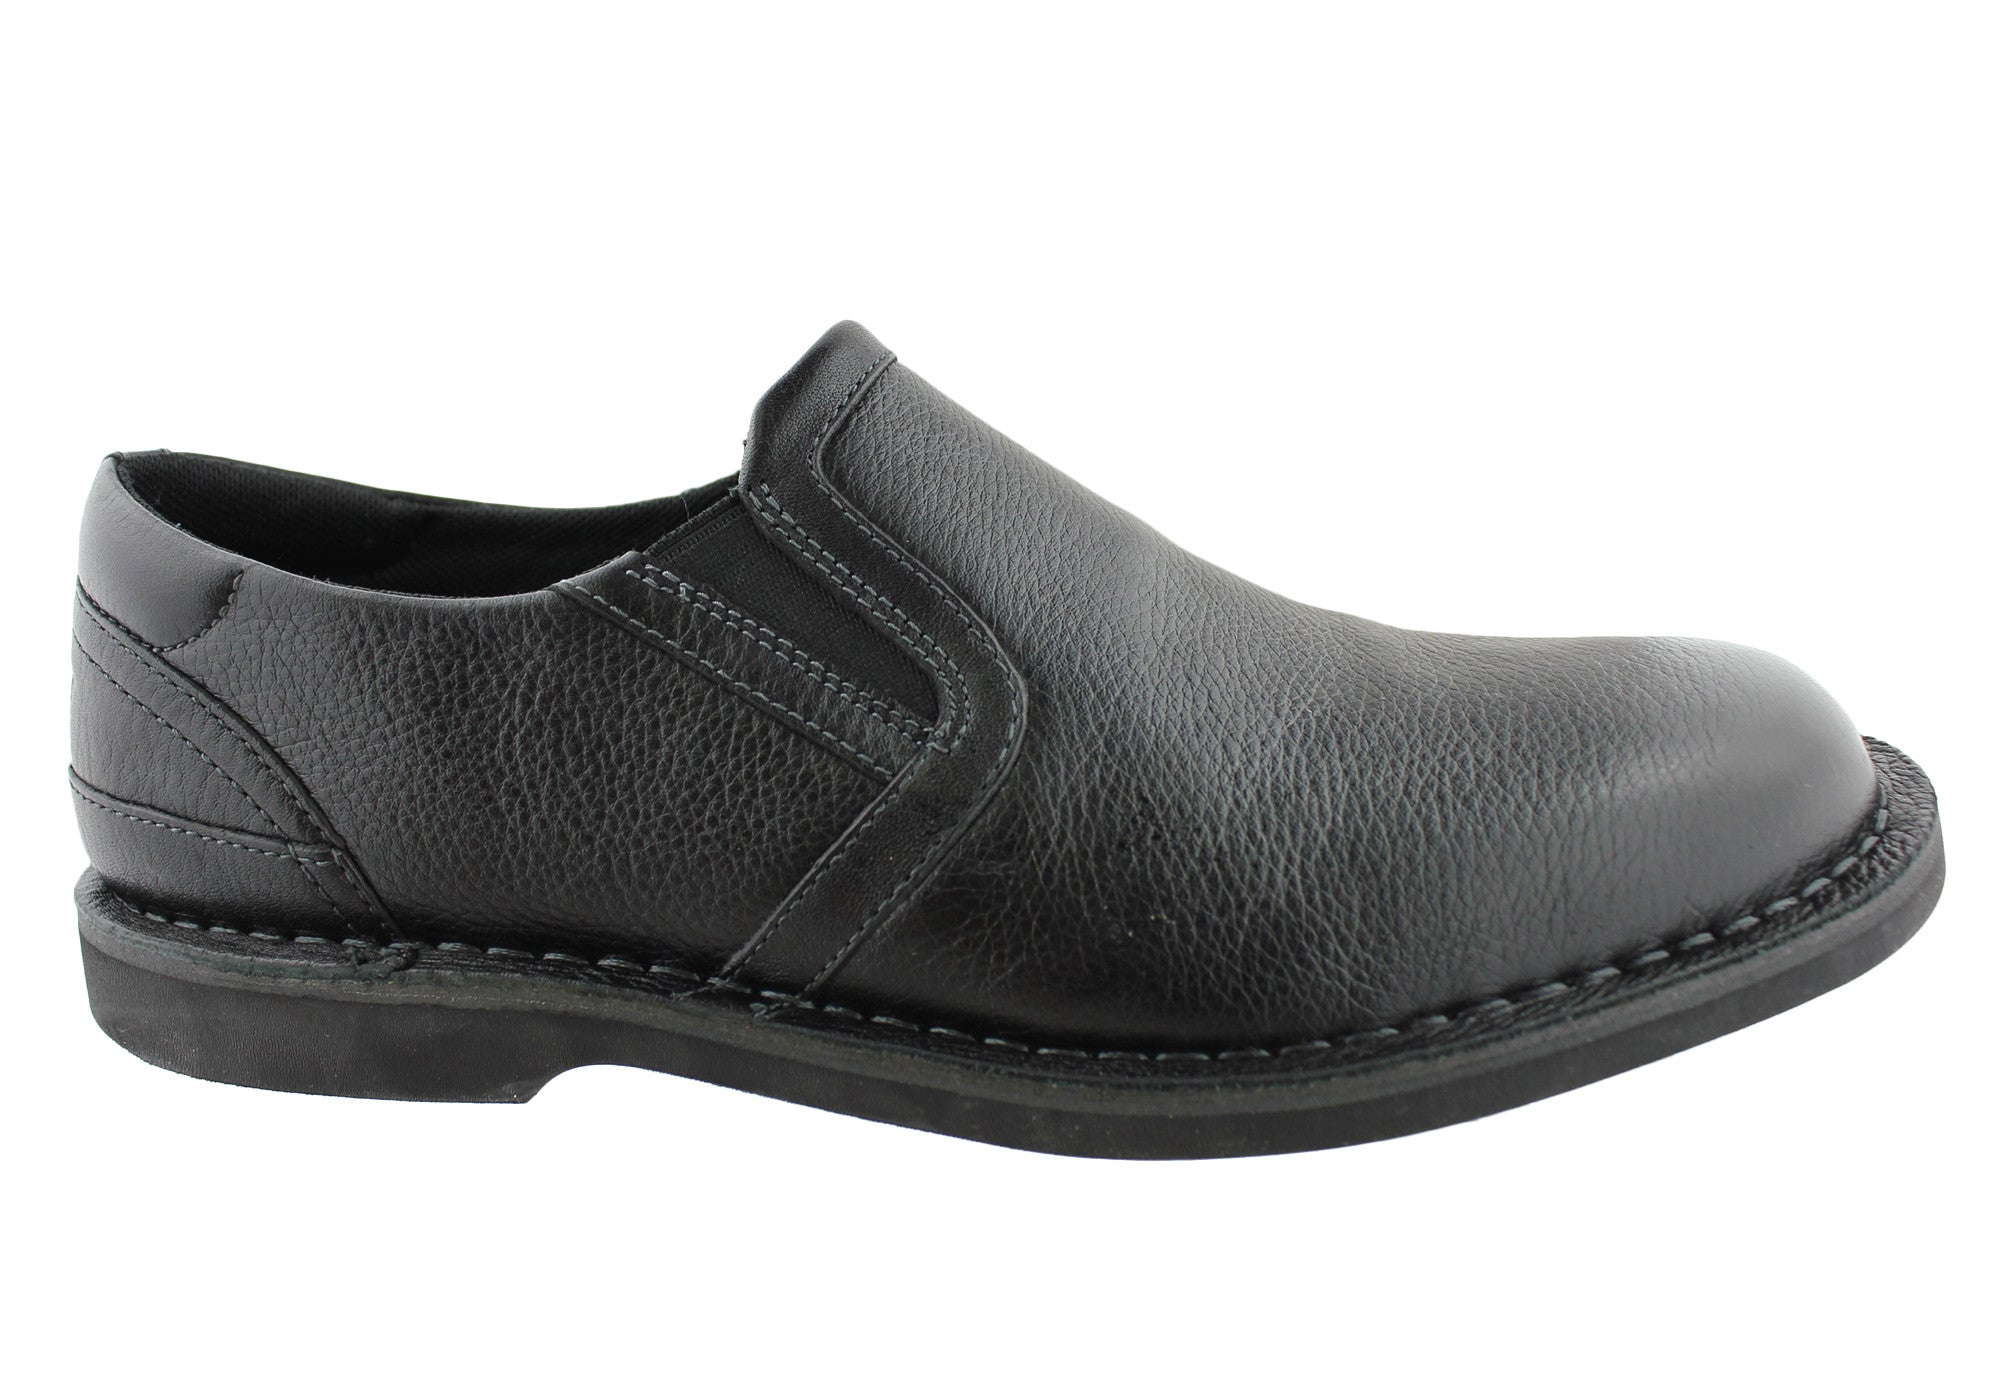 rockport shoes 2 for 99 eyeglasses special promotions 963052